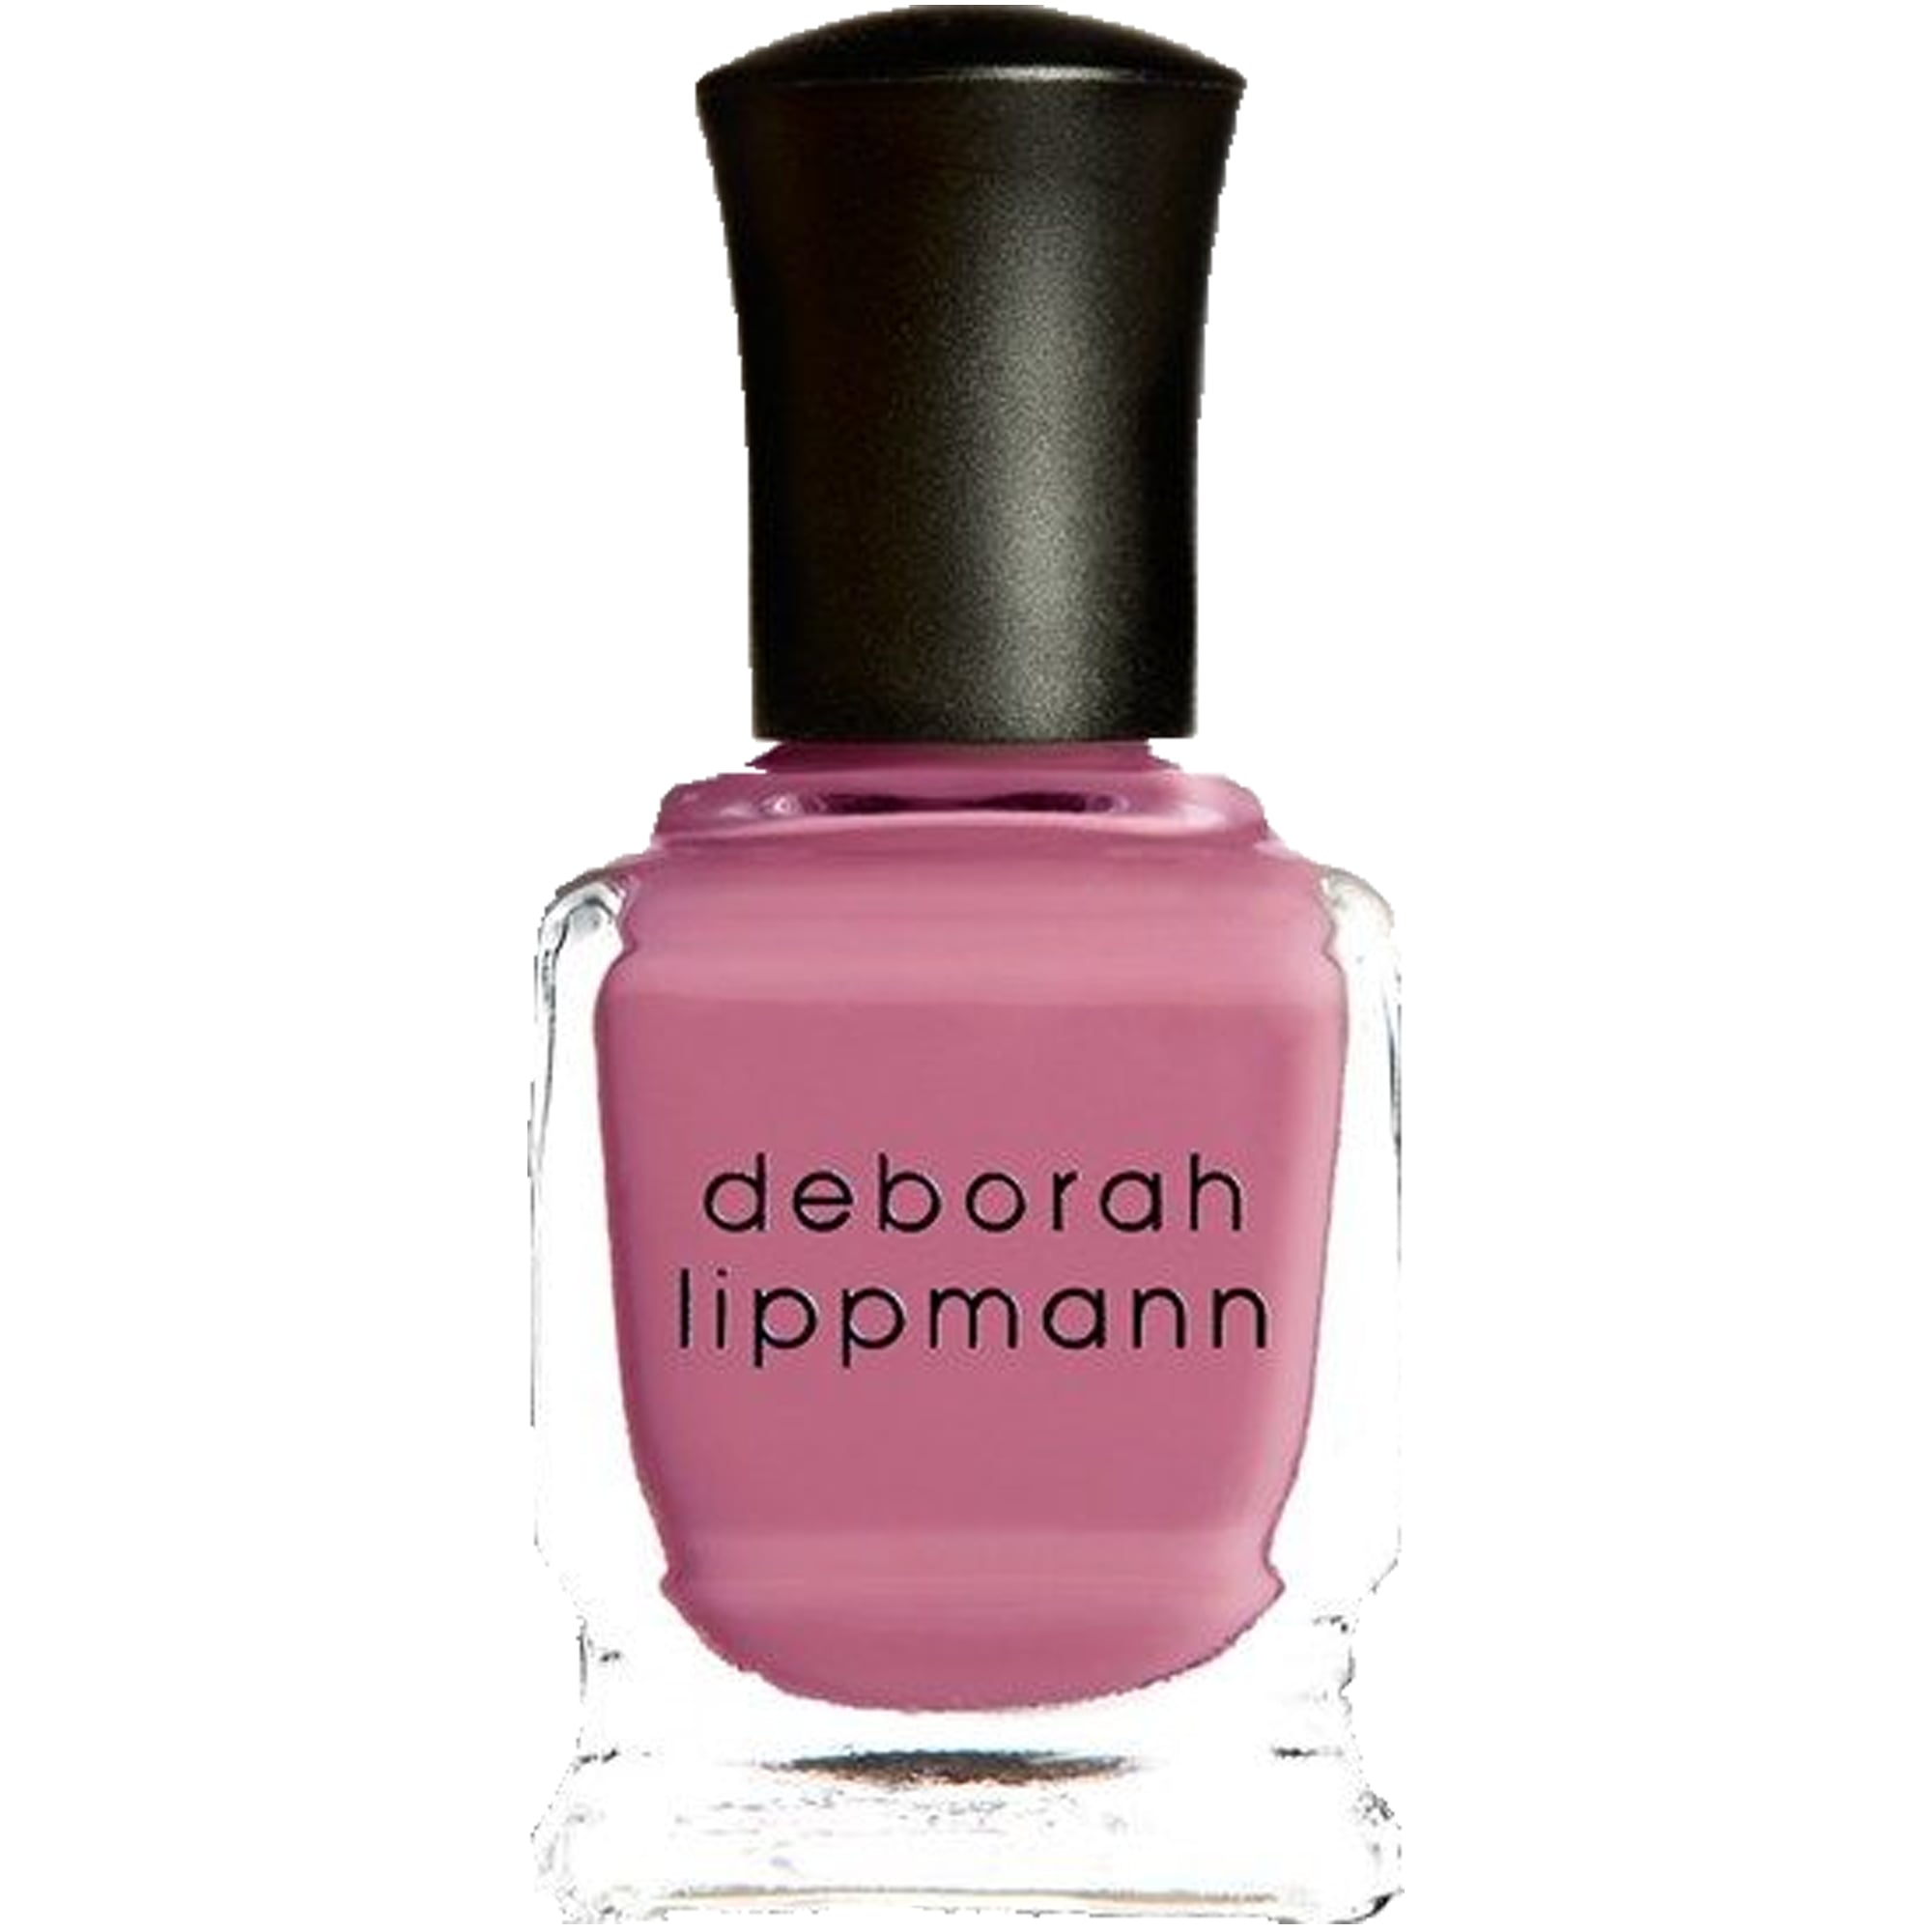 Deborah Lippmann Nail Lacquer - I Feel Pretty 15ml (20398)